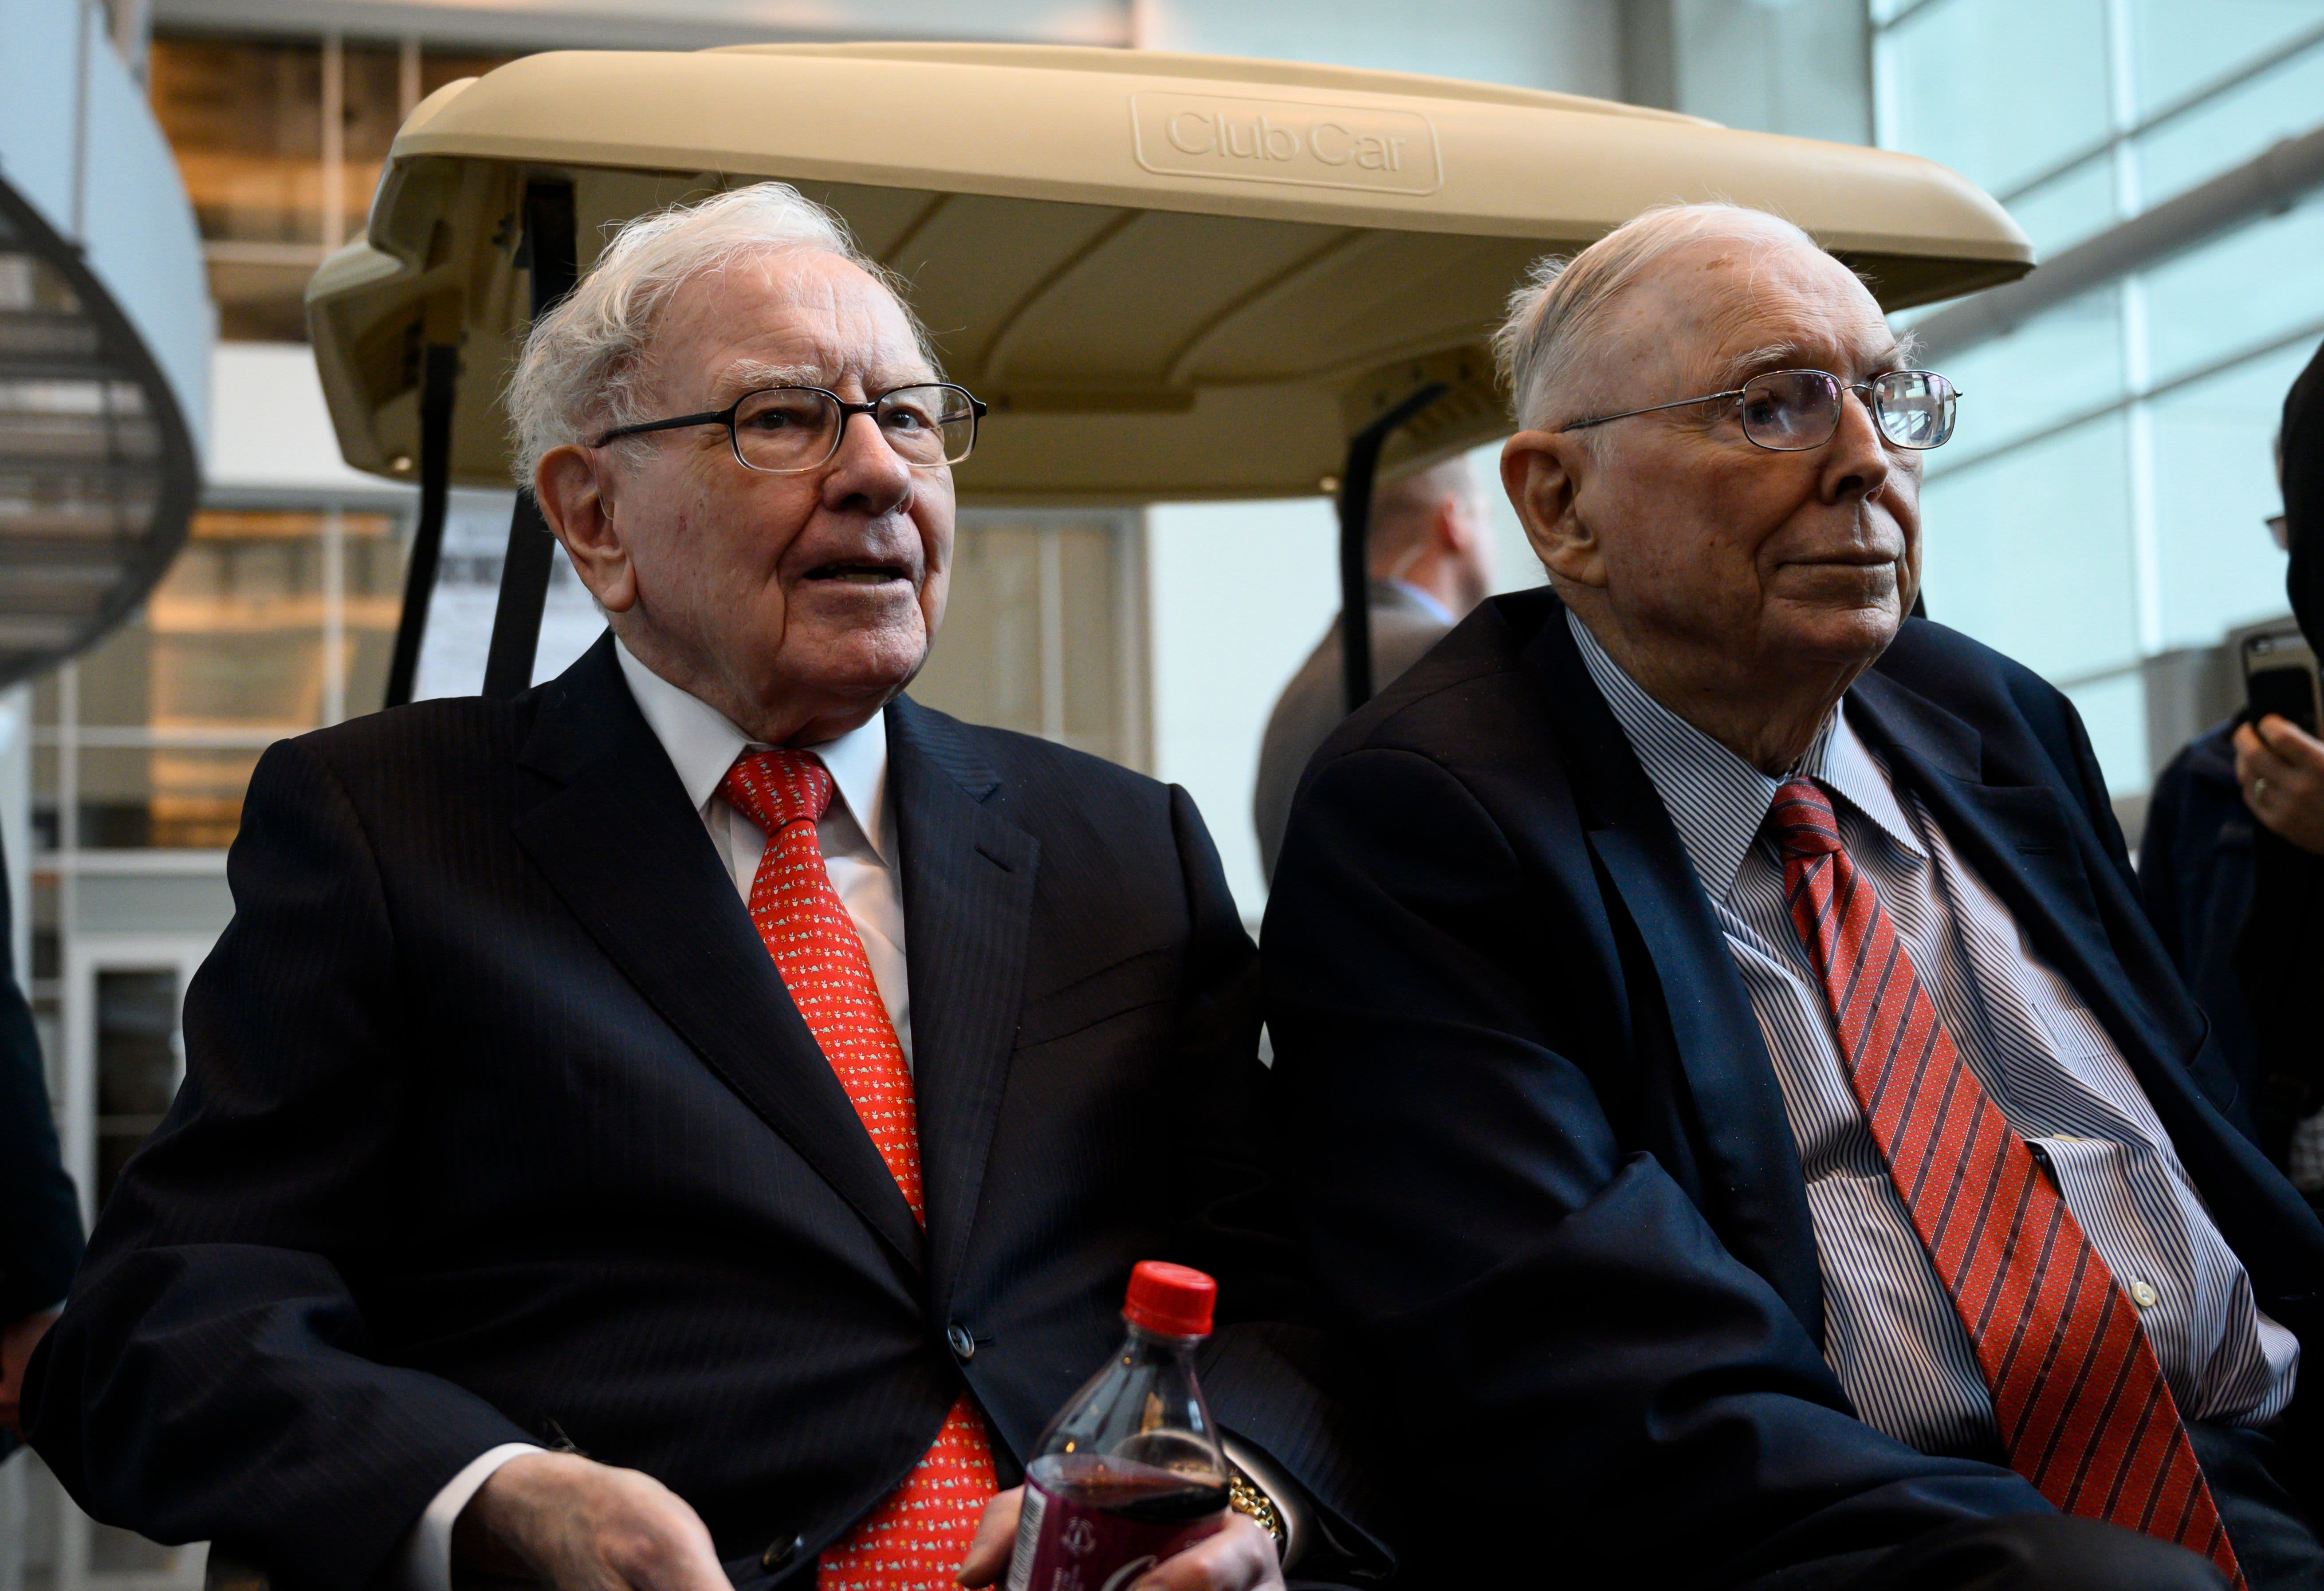 Warren Buffett says Berkshire's purchase of high-flying Amazon was still 'value investing'